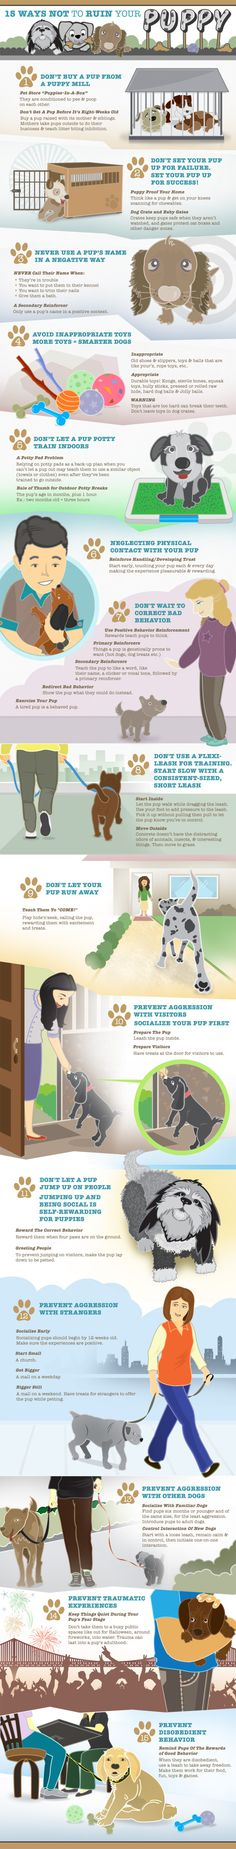 15 Ways Not To Ruin Your Puppy, An Infographic